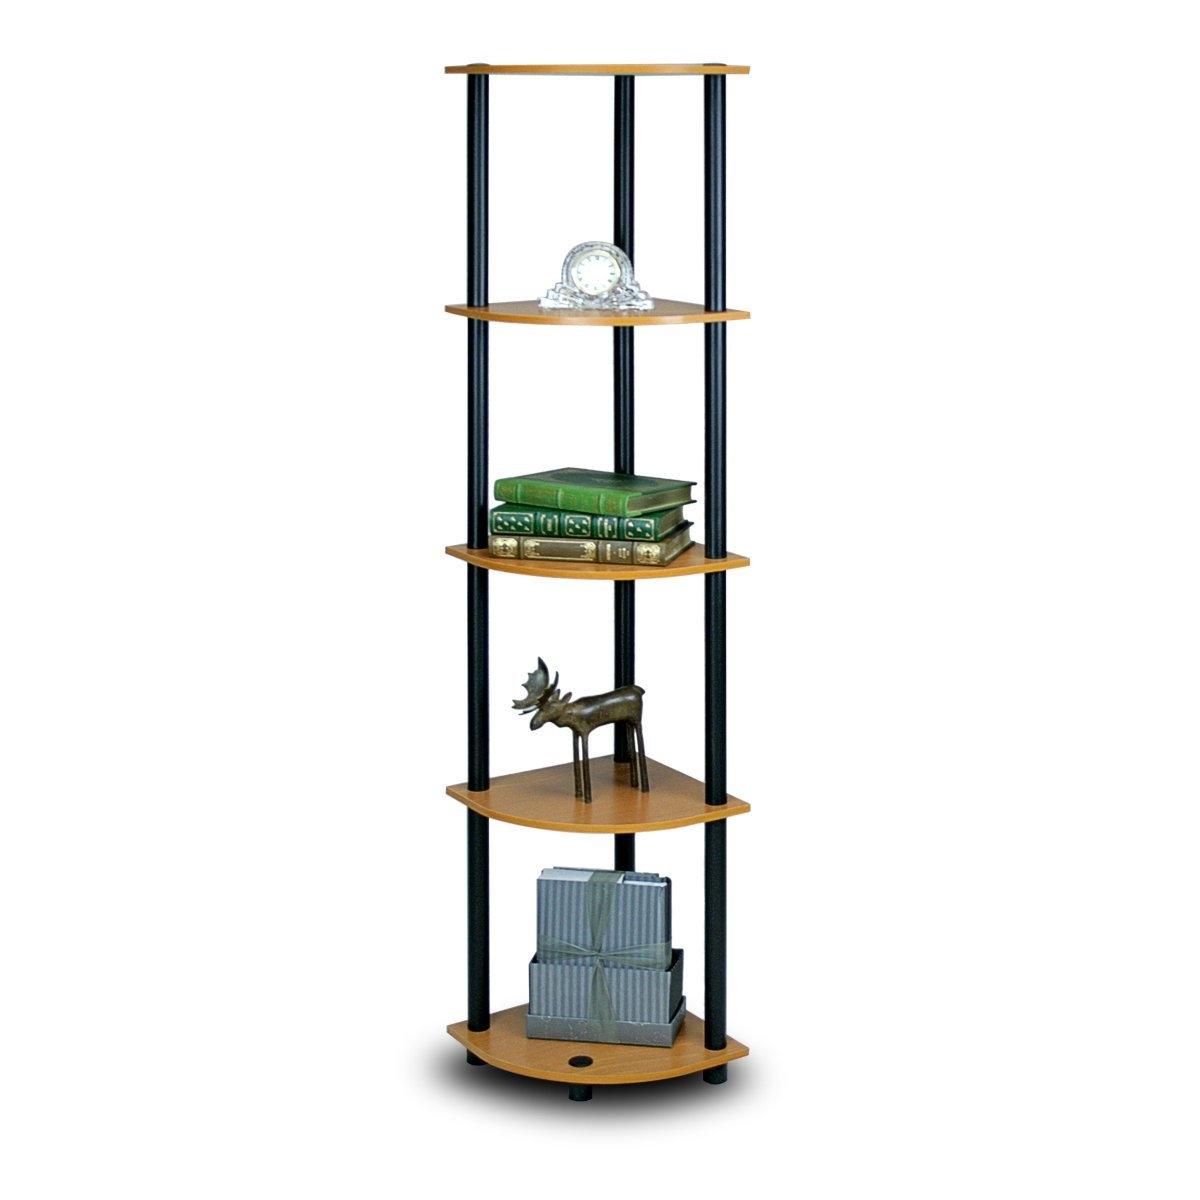 This 5-Tier Corner Display Shelf Bookcase in Light Cherry & Black is designed to meet the demand of low cost but durable and efficient furniture. It is proven to be the most popular furniture due to its functionality, price, and the no hassle assembly. The materials comply with e1 grade particle board for furniture. There is no foul smell of chemicals, durable and it is the most stable particleboard used to make furniture. Care instructions: wipe clean with clean damped cloth. Avoid using harsh chemicals. We are pleased to send you the replacement part free of charge. Pictures are for illustration purpose. All decor items are not included in this offer. Pictures are for illustration purpose. All decor items are not included in this offer.